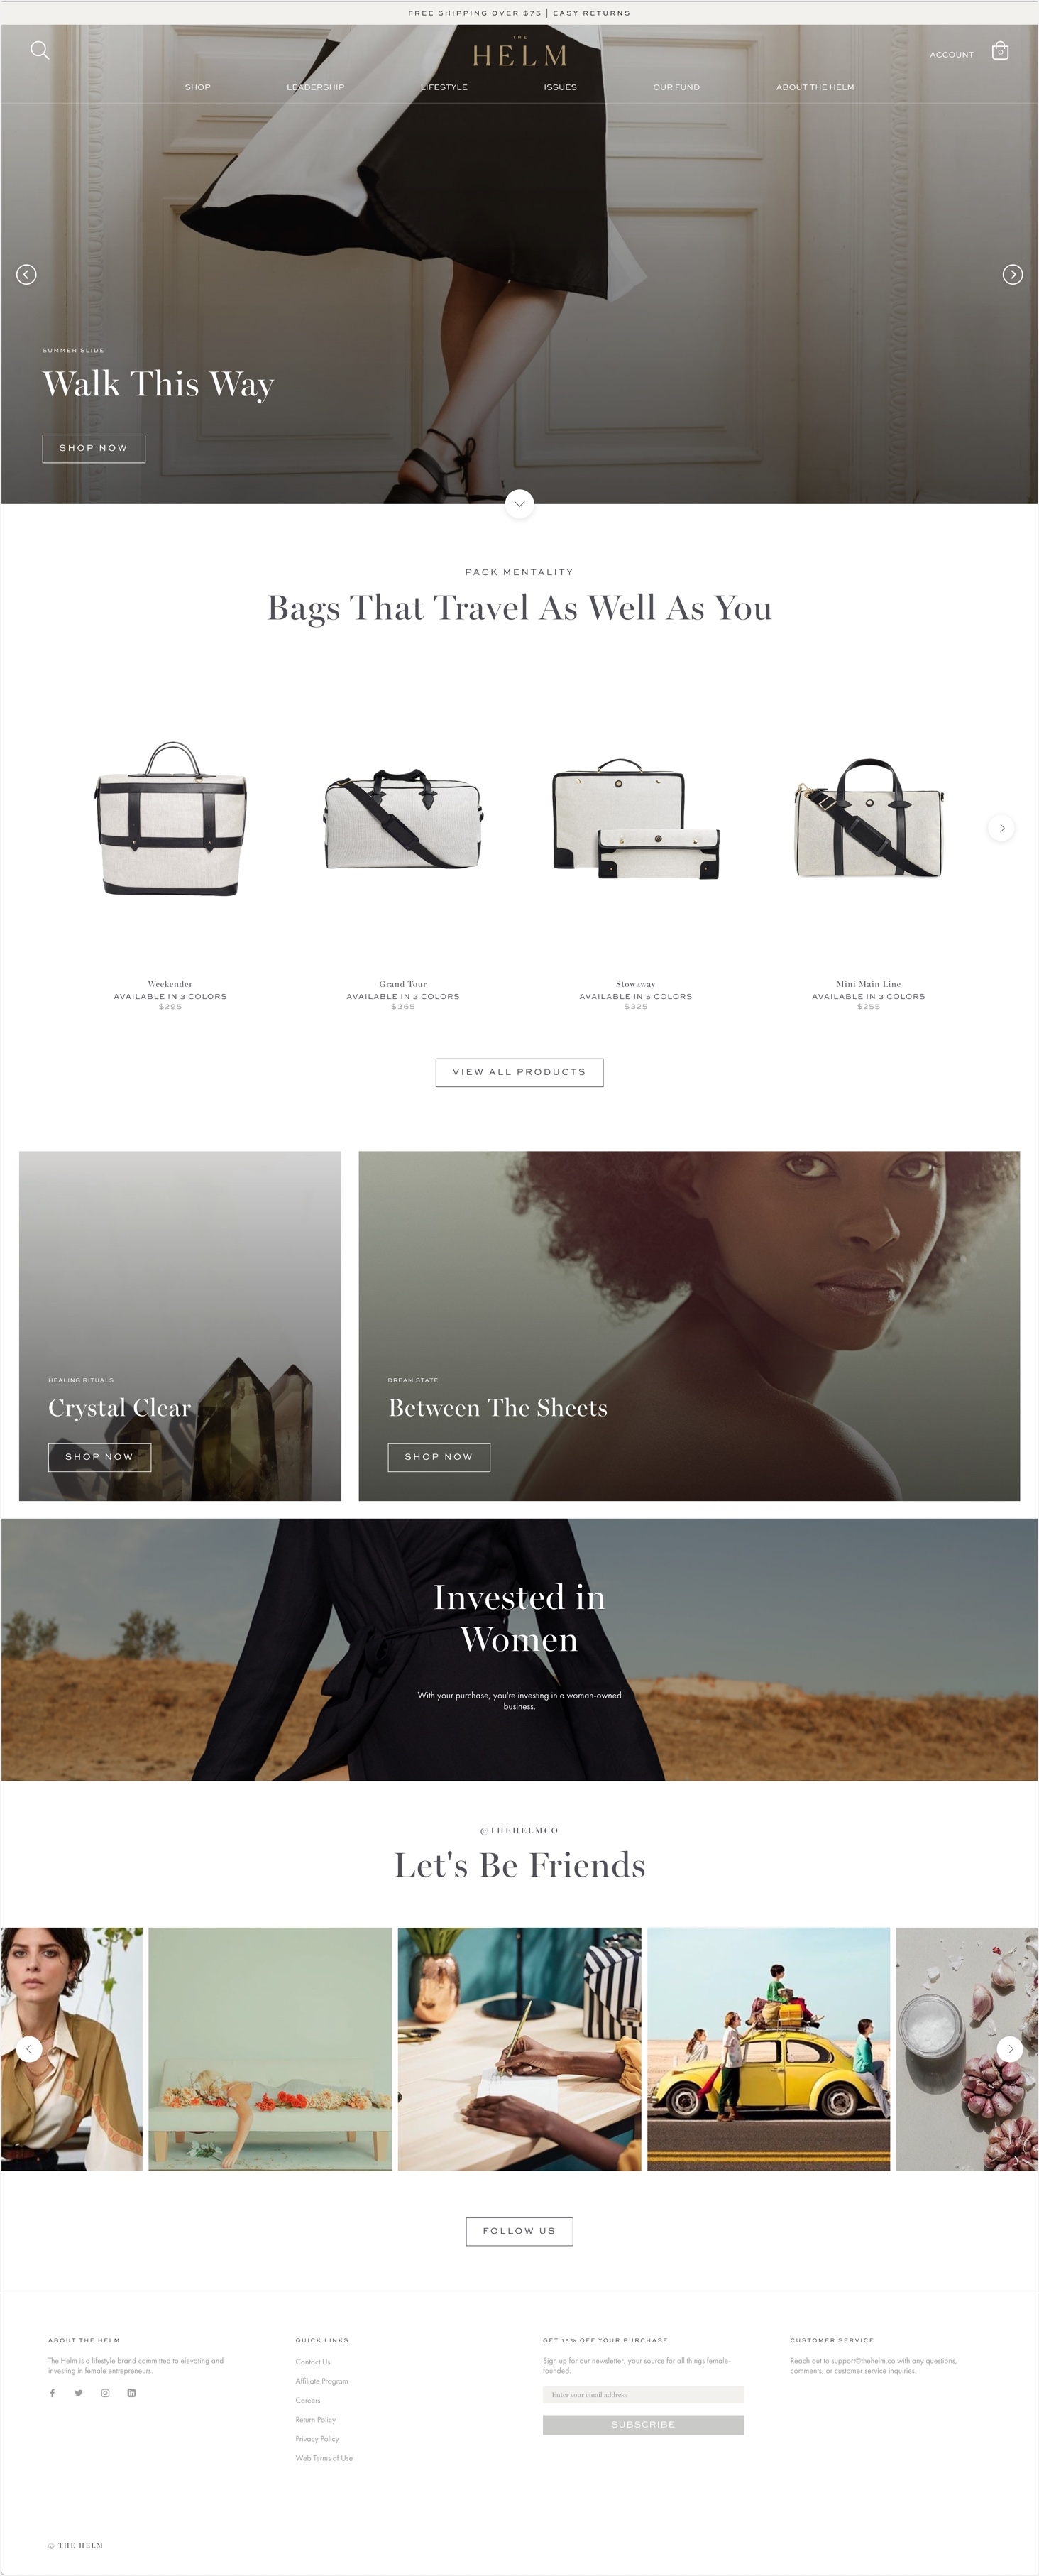 The Helm Homepage